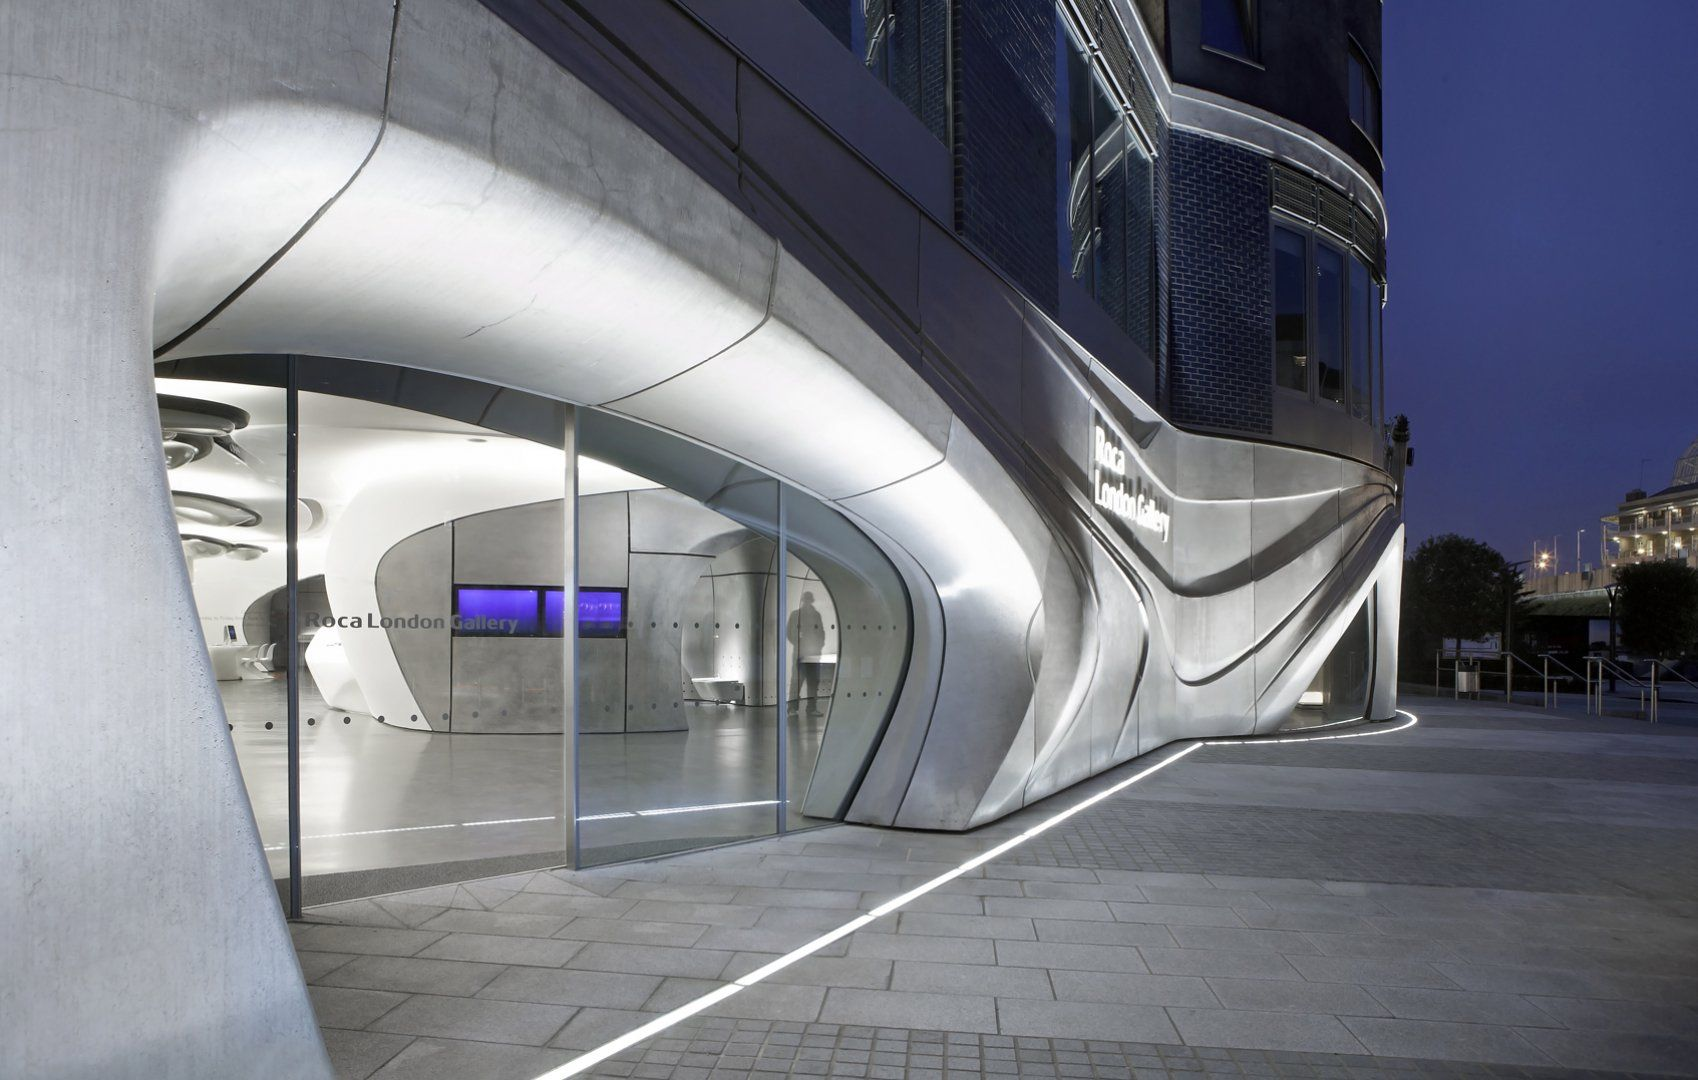 Roca London Gallery Architecture Zaha Hadid Architects Zaha Hadid Zaha Hadid Design